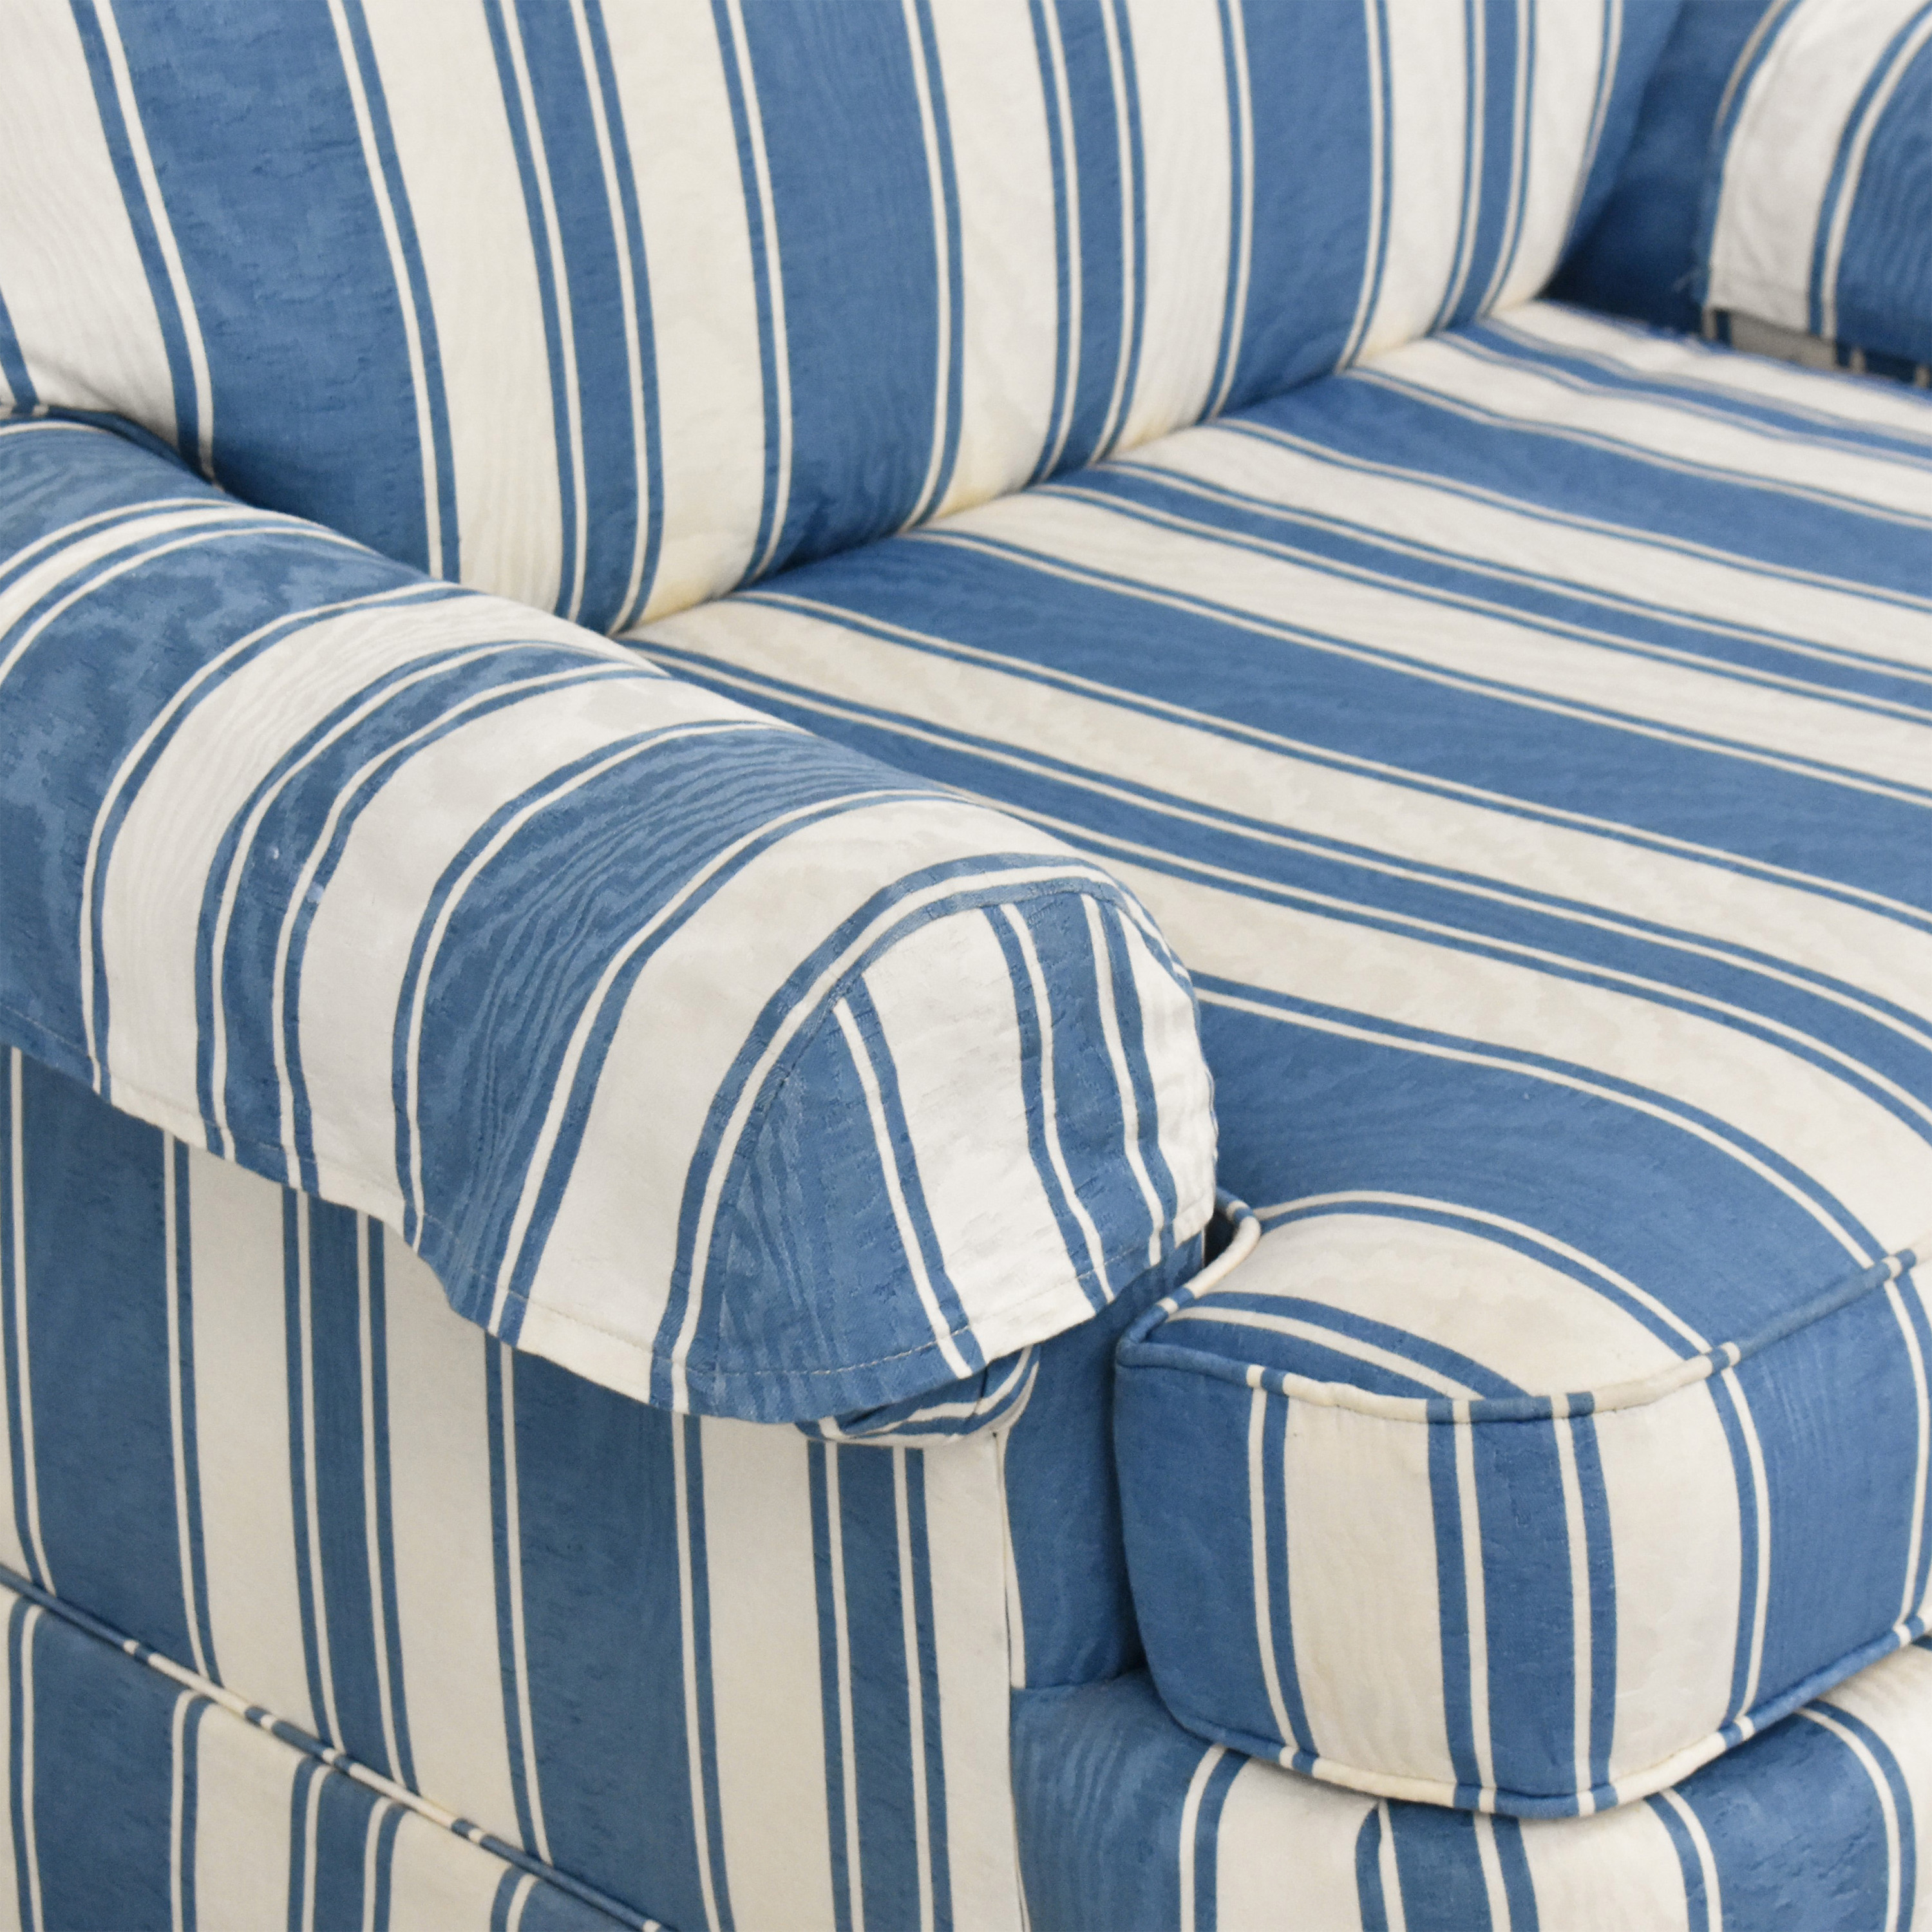 Clayton Marcus Clayton Marcus Striped Accent Chair Accent Chairs